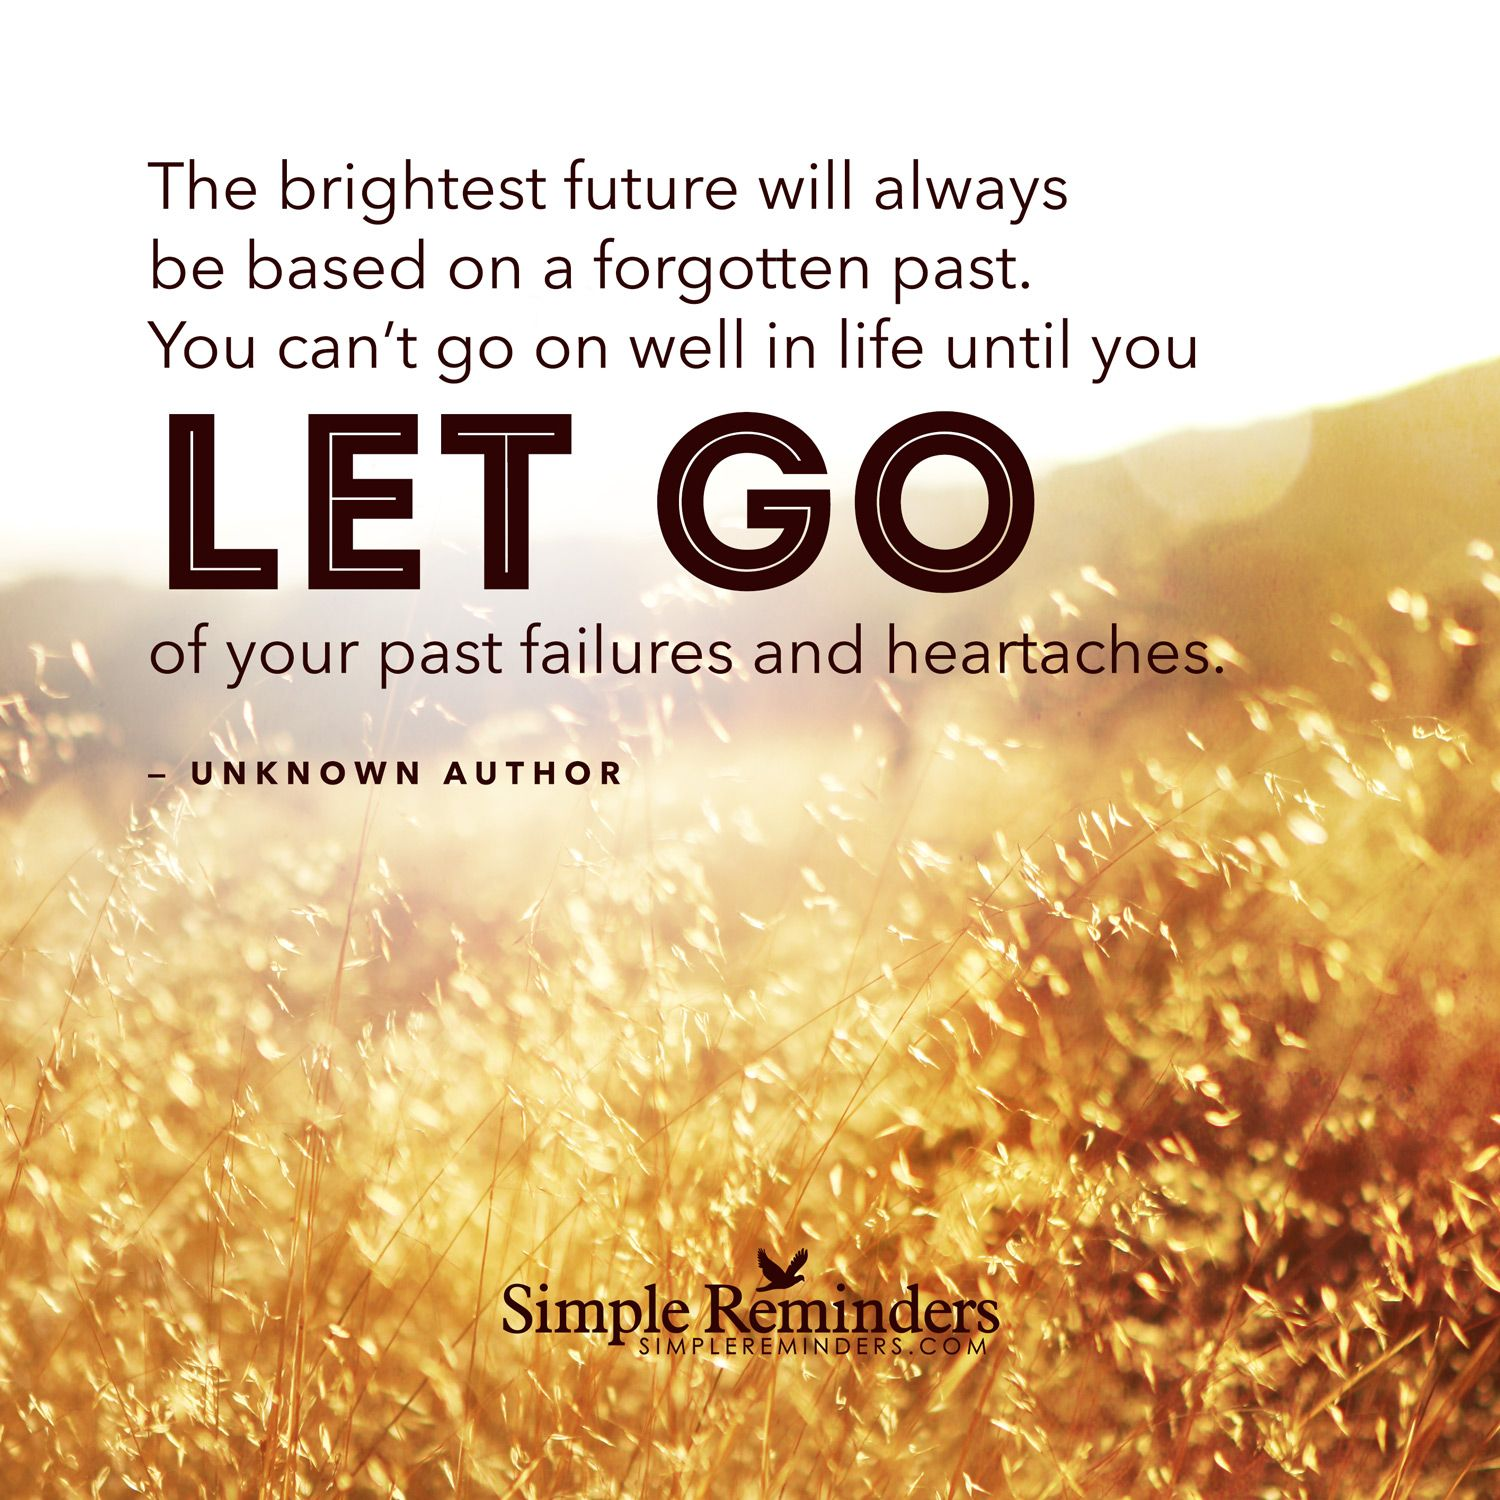 Quotes About Letting Go Of The Past: The Brightest Future Will Always Be Based On A Forgotten